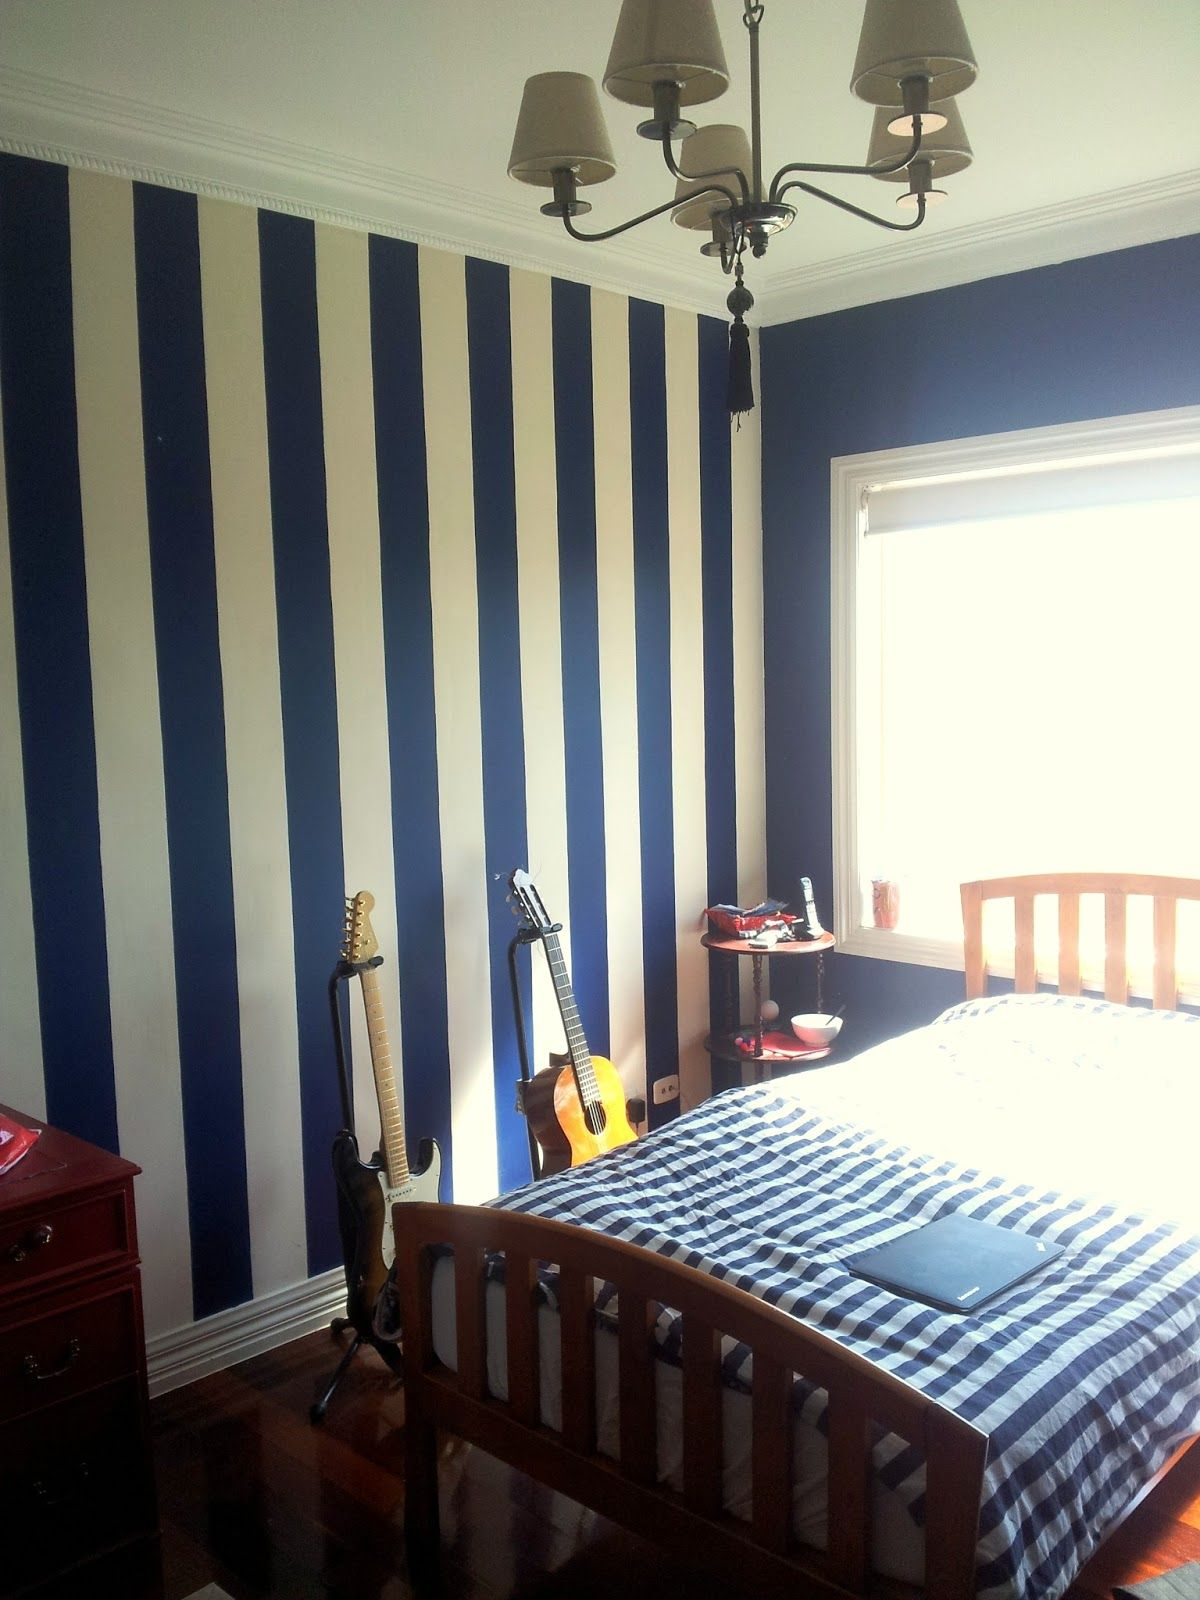 stripes in navy on one wall behind headboard | charmaine's room